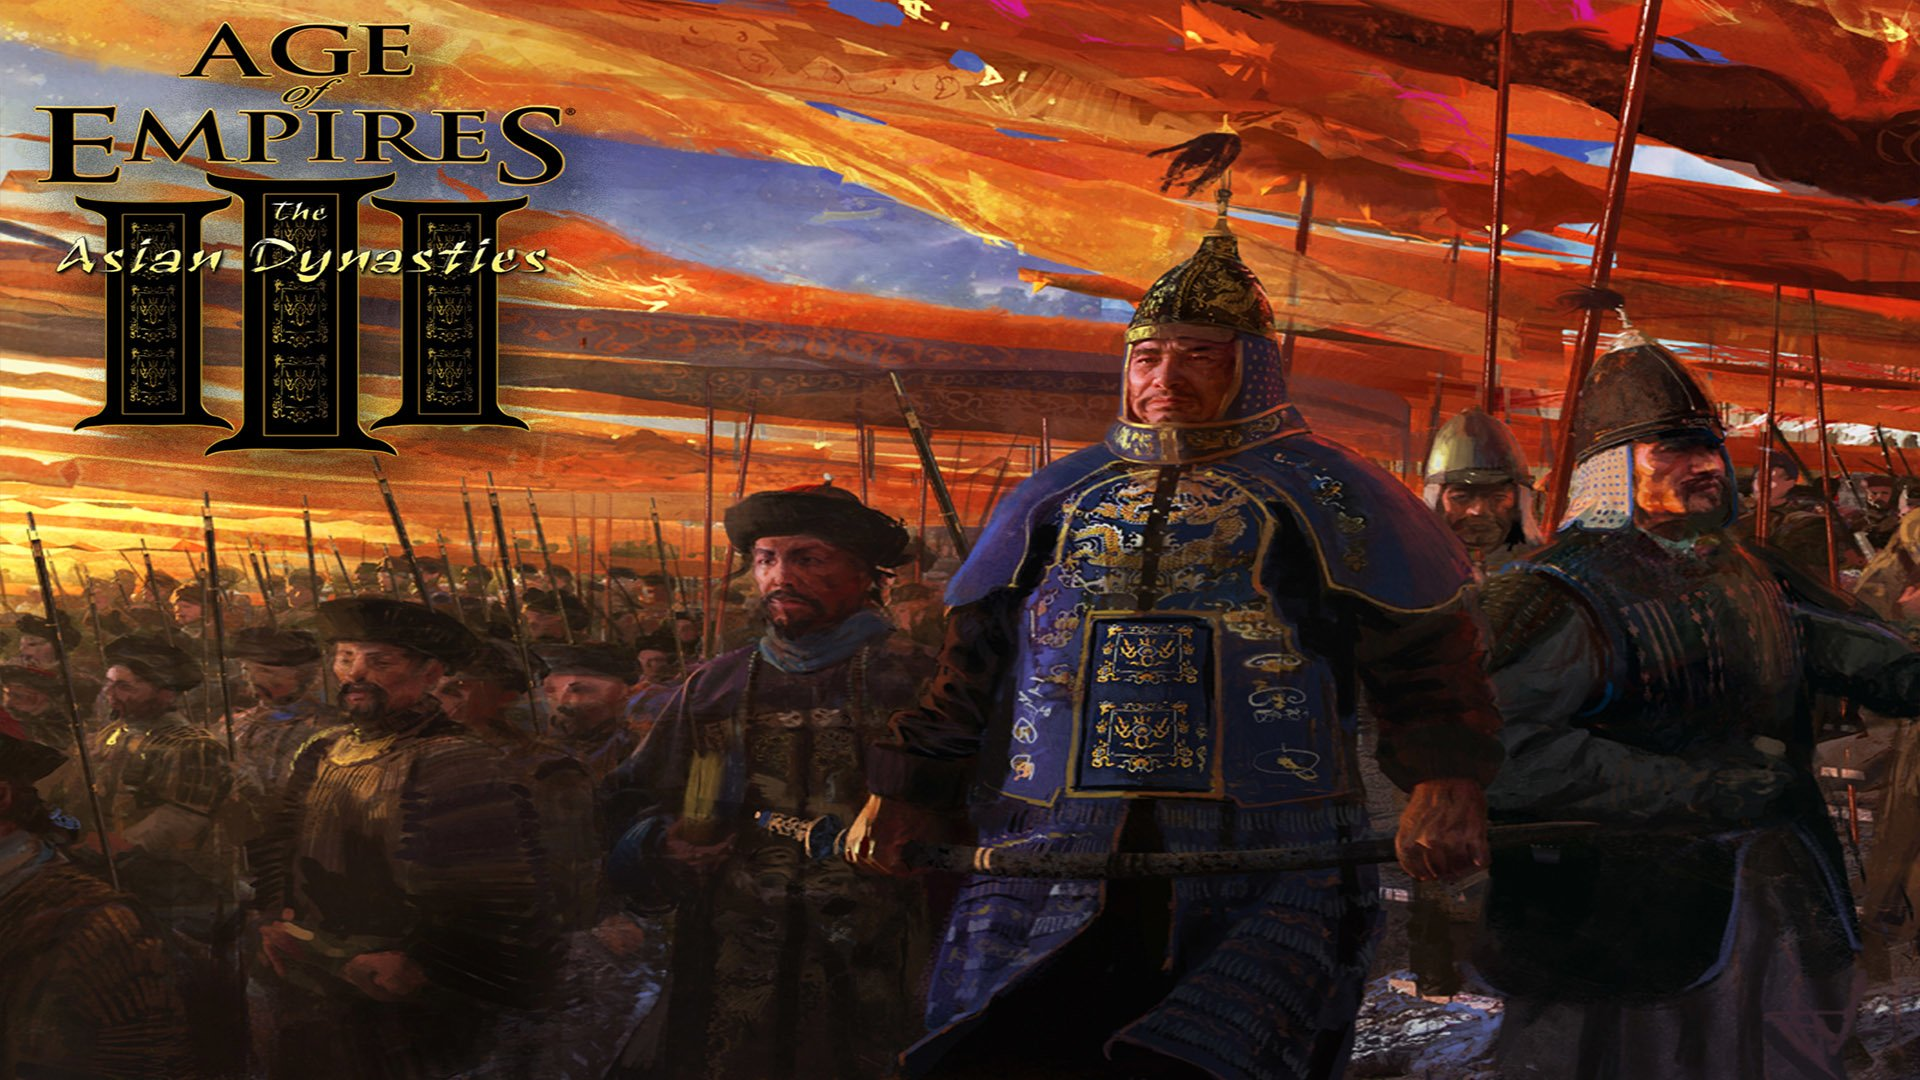 4 Age Of Empires Iii The Asian Dynasties Hd Wallpapers